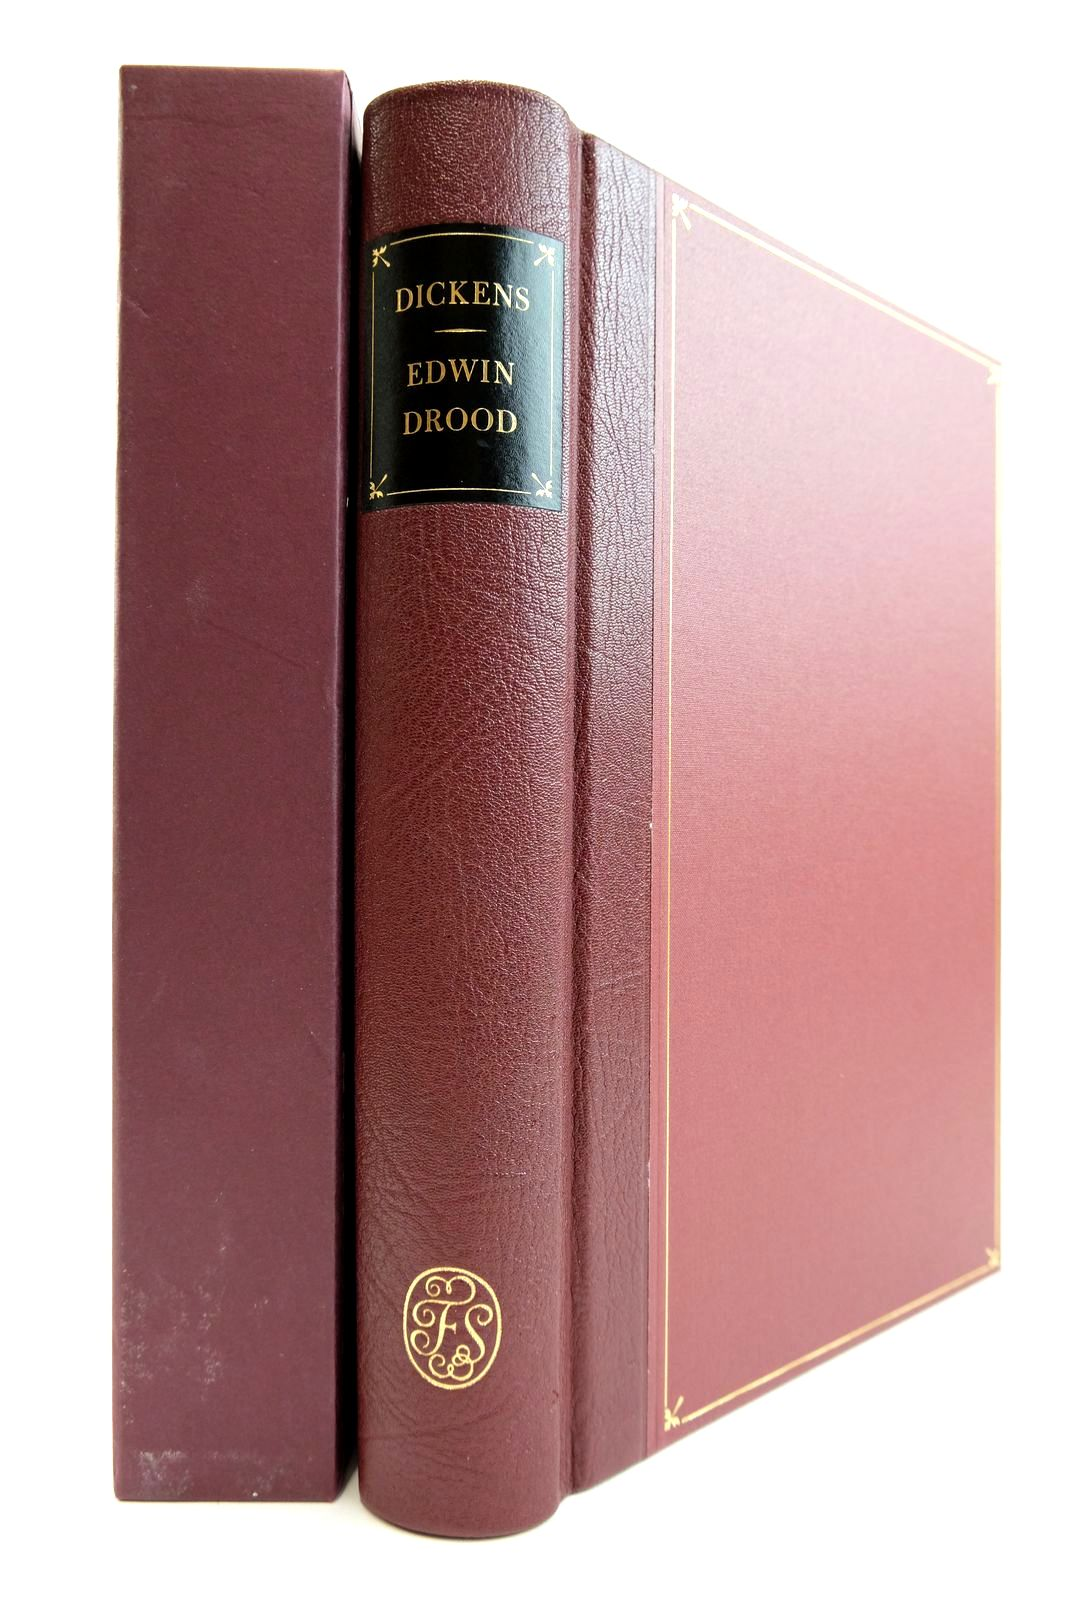 Photo of THE MYSTERY OF EDWIN DROOD written by Dickens, Charles illustrated by Fildes, Luke published by Folio Society (STOCK CODE: 2132390)  for sale by Stella & Rose's Books